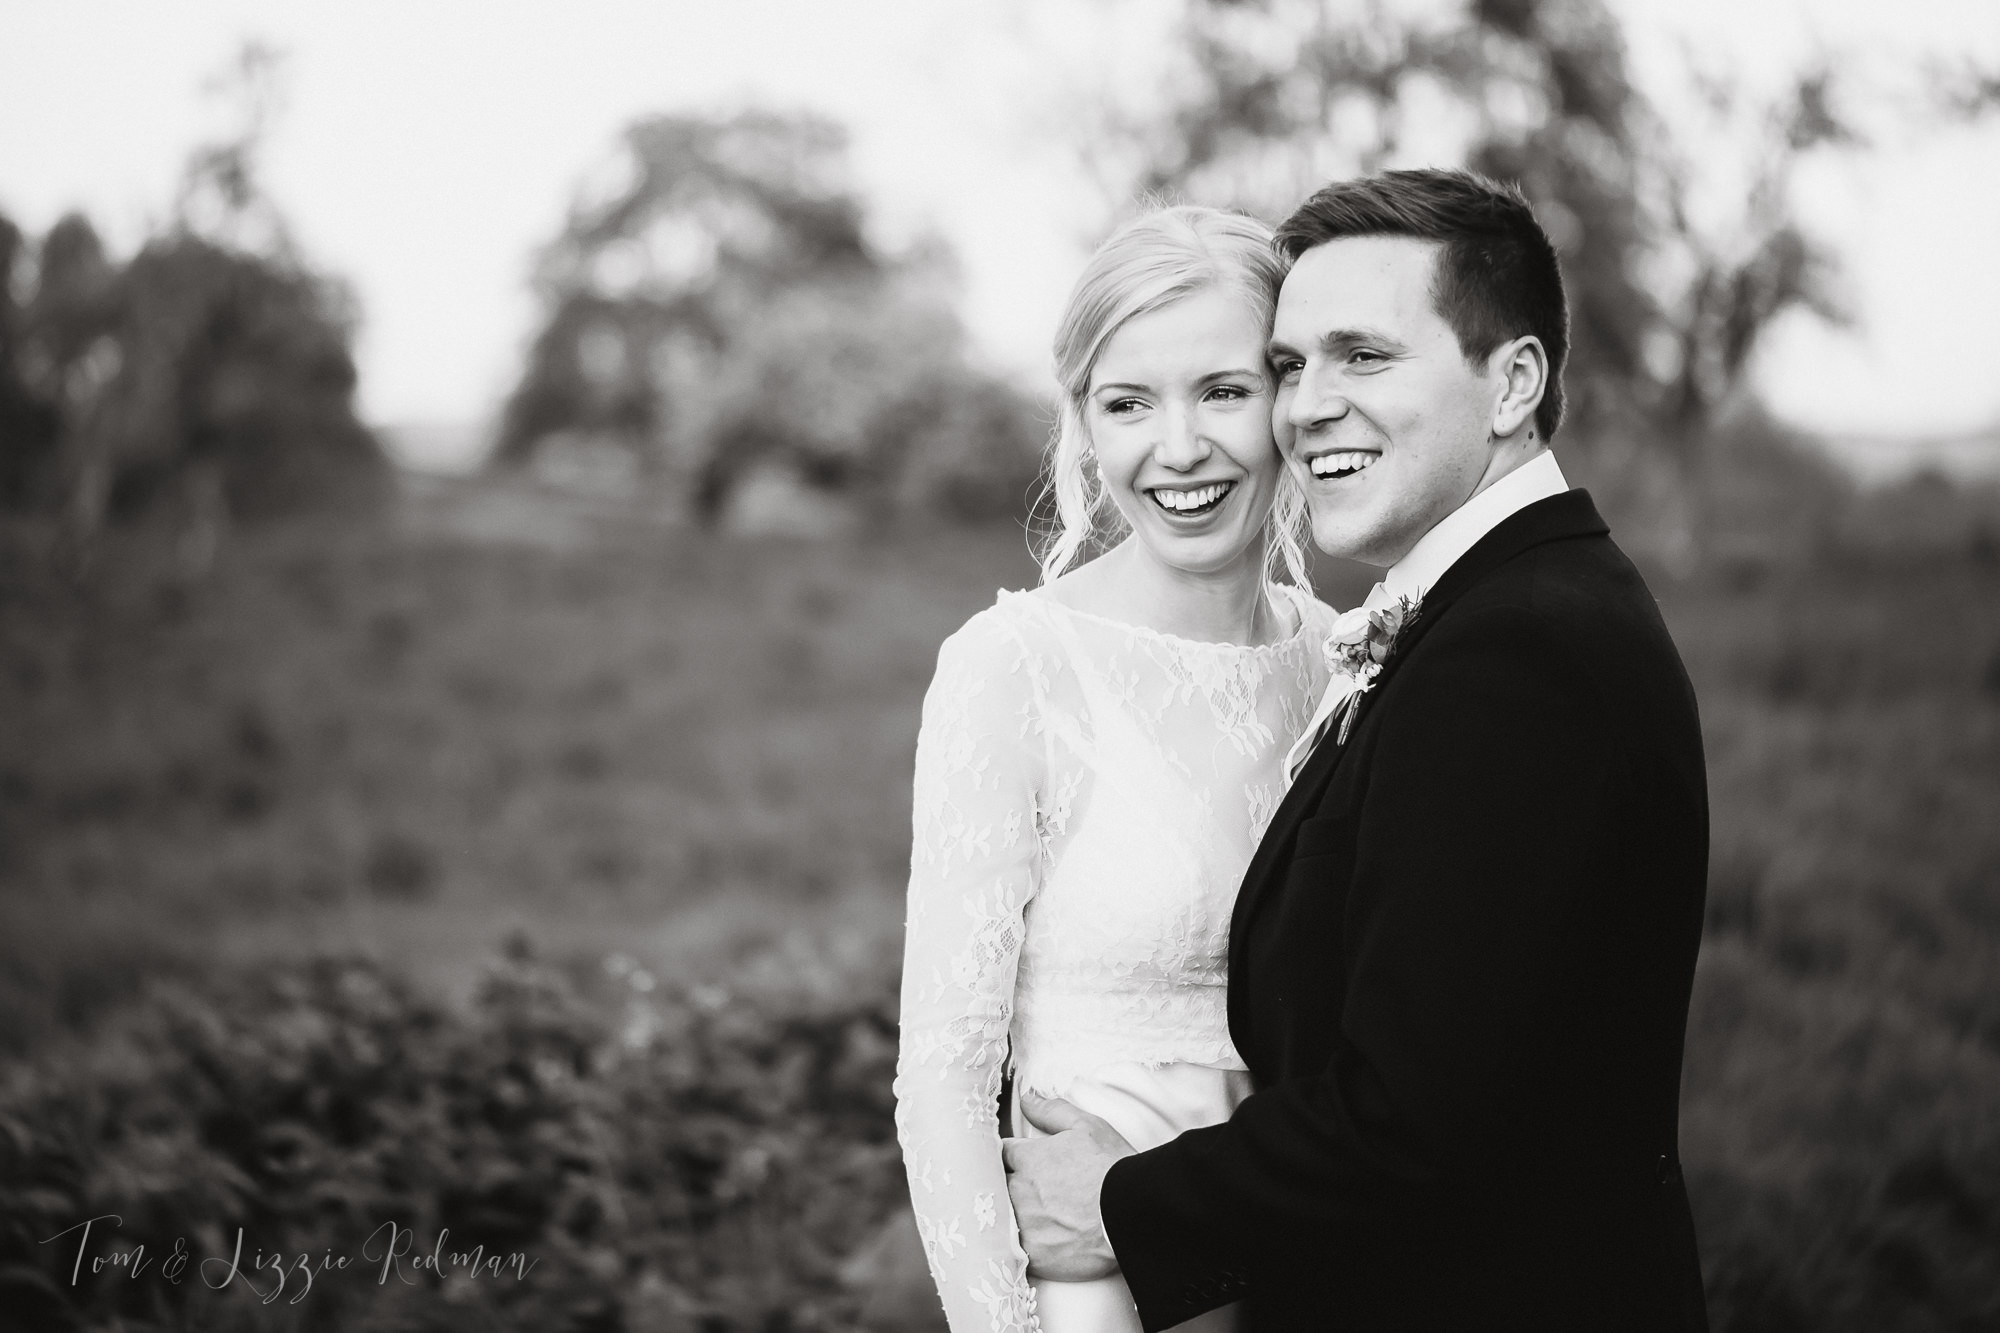 Dorset wedding photographers Tom & Lizzie Redman 069.jpg